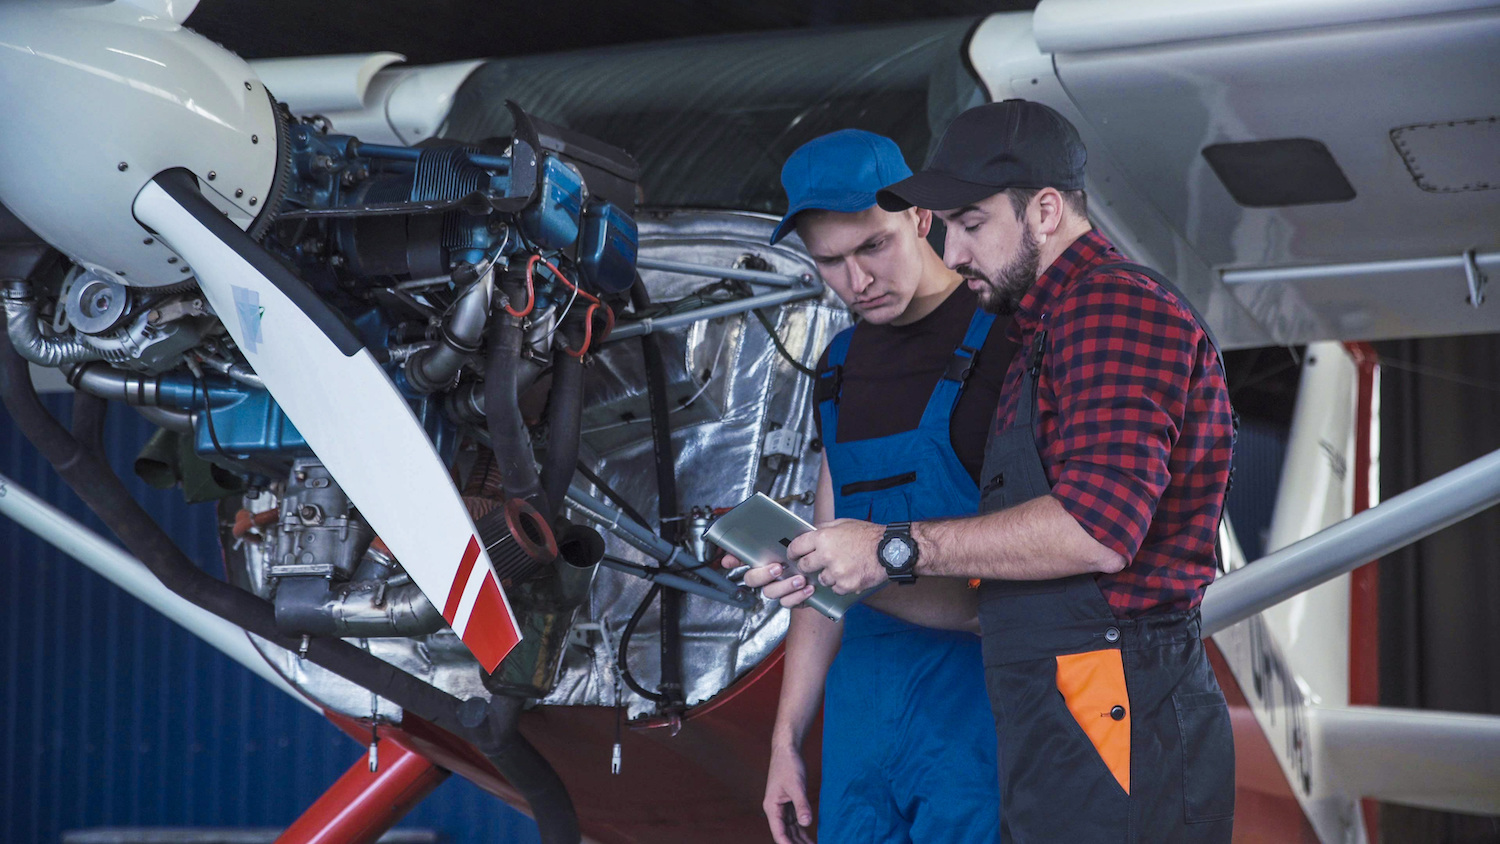 technician talking to another technician about plane troubleshooting